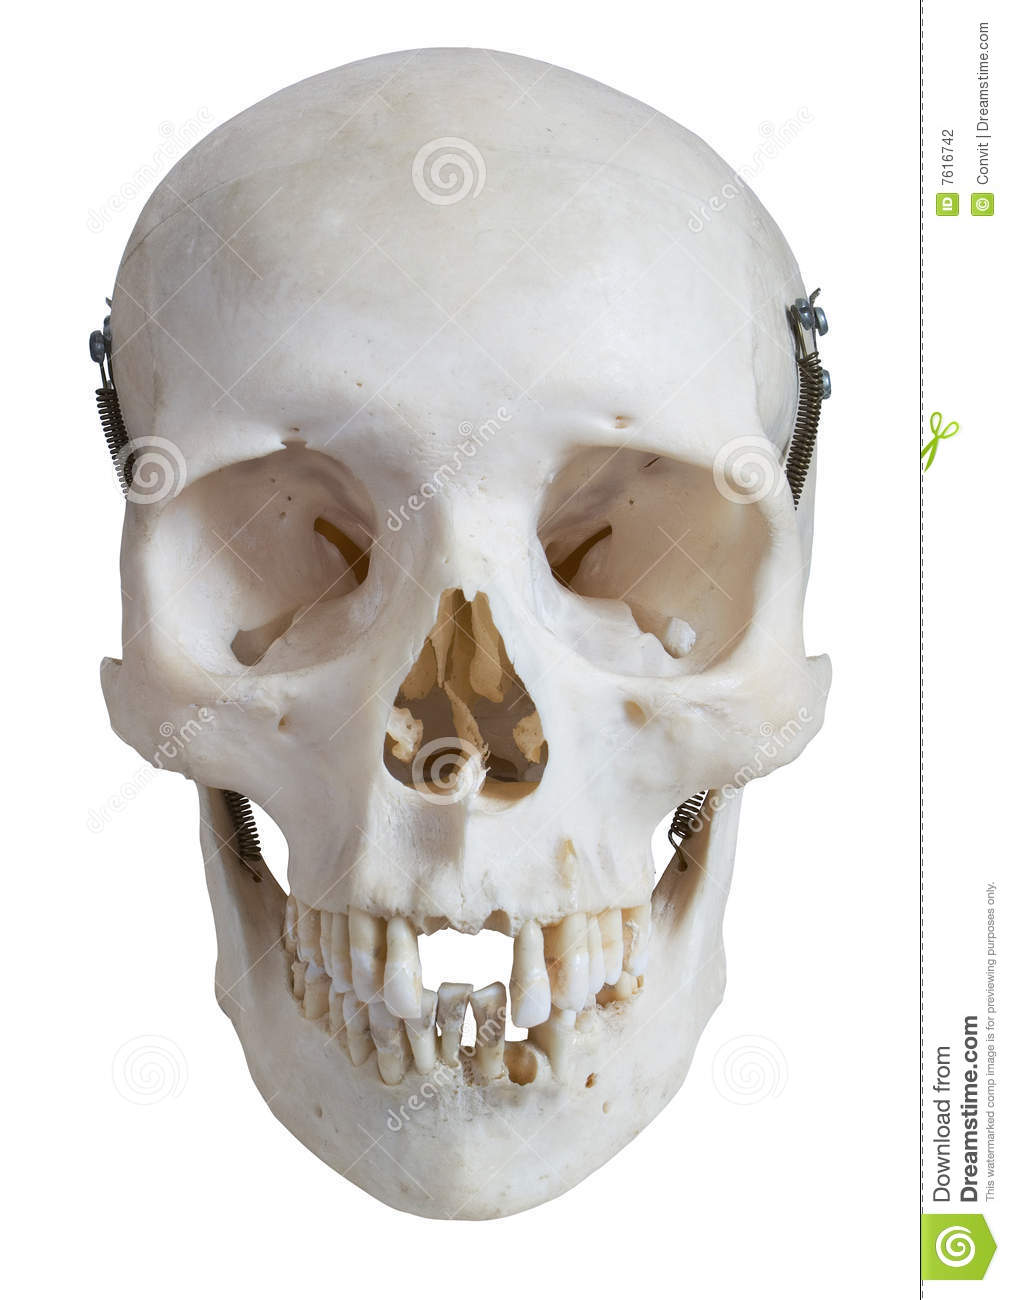 Human Skull Frontal View With Clipping Path Stock Photo Image Of